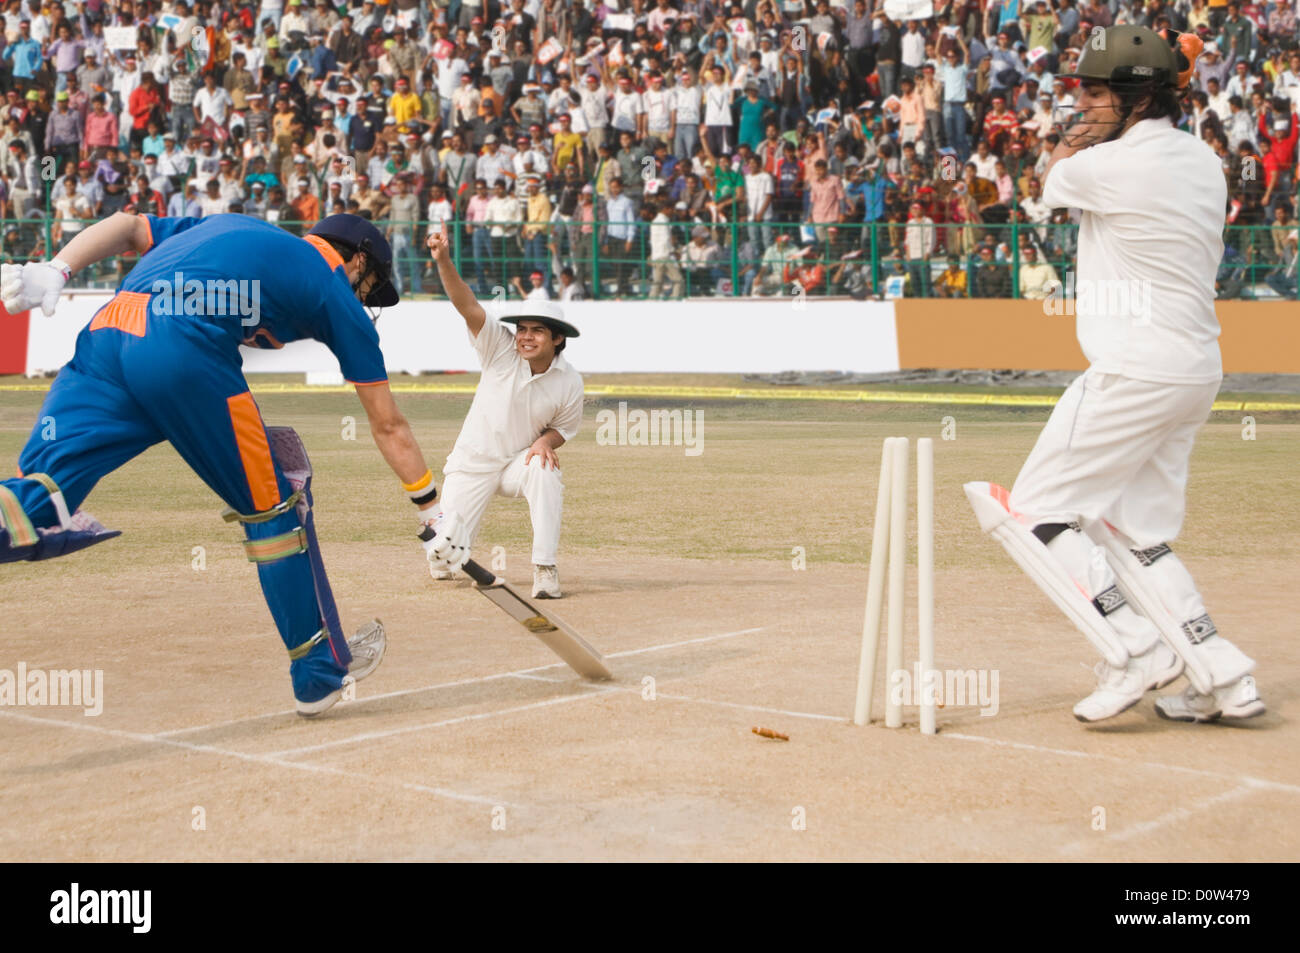 Cricket batsman scoring a run and fielder appealing for run out - Stock Image